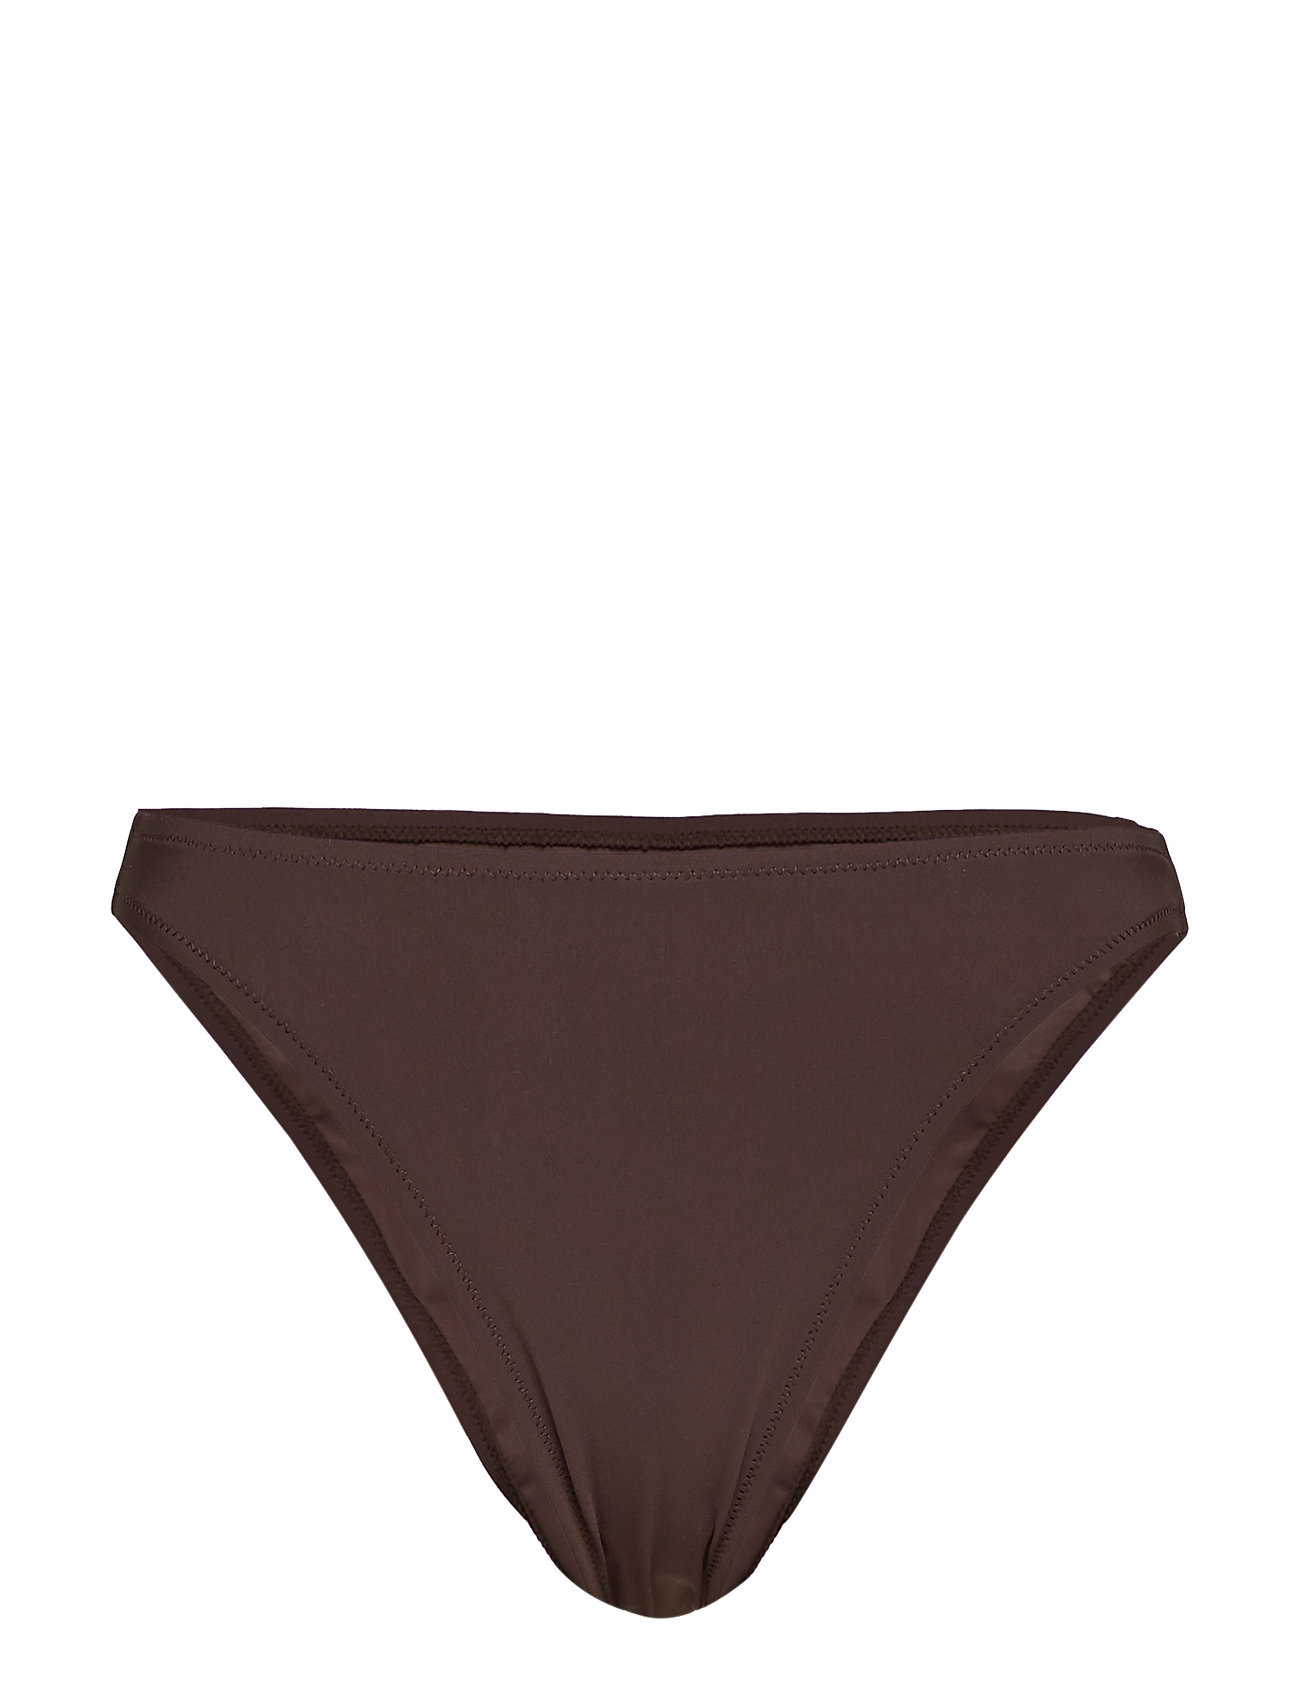 Filippa K Soft Sport High Cut Brief - FONDANT